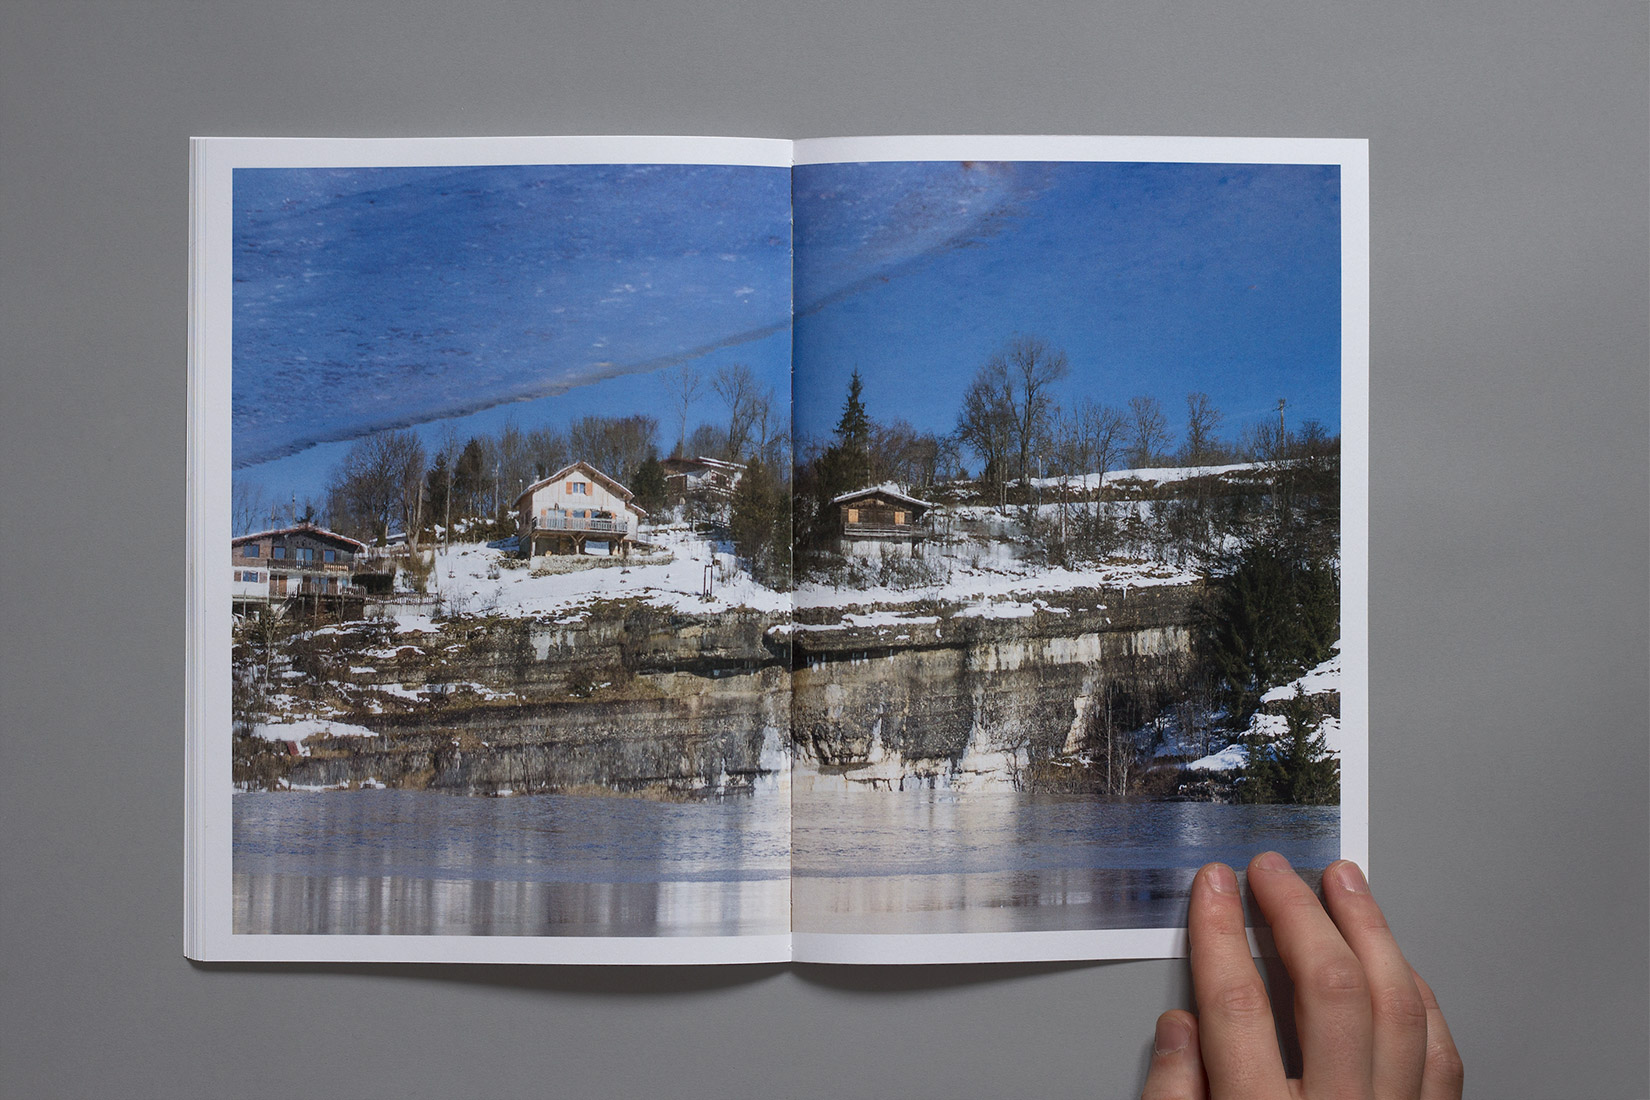 Lac des brenets - reflection, ice, houses, cliff, book, photography</div>